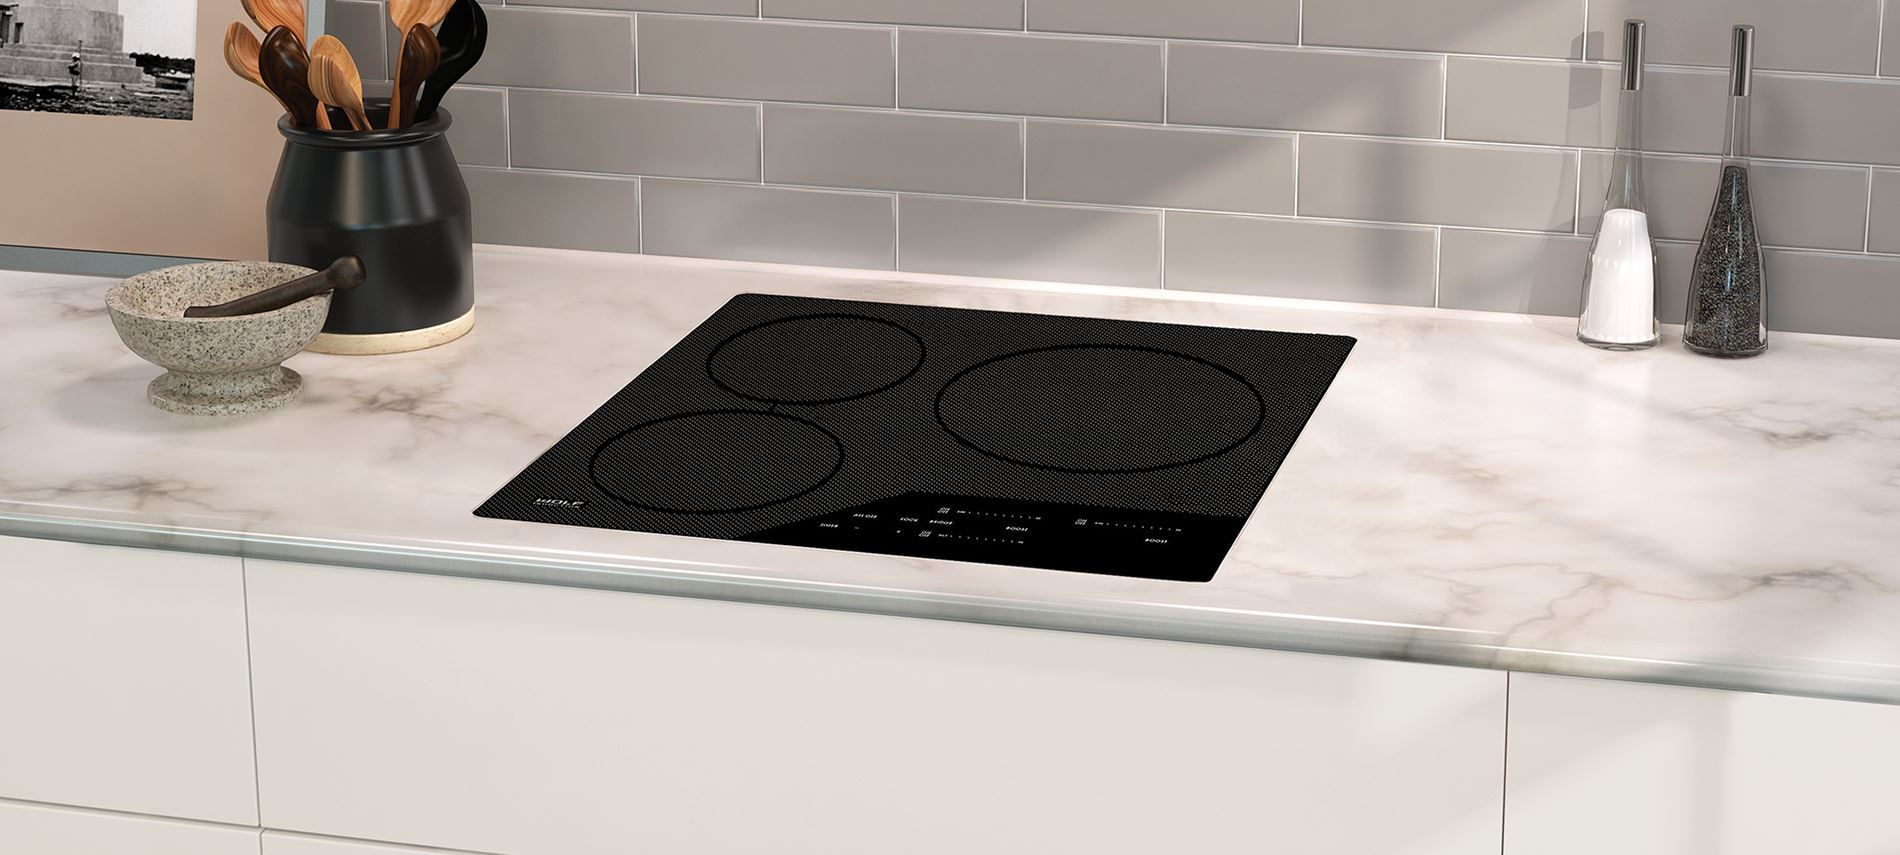 24 Wolf Induction Cooktop Three Elements And Bridging Option To Accommodate Diffe Pan Sizes Can Be Installed Flush With Countertop For Smooth